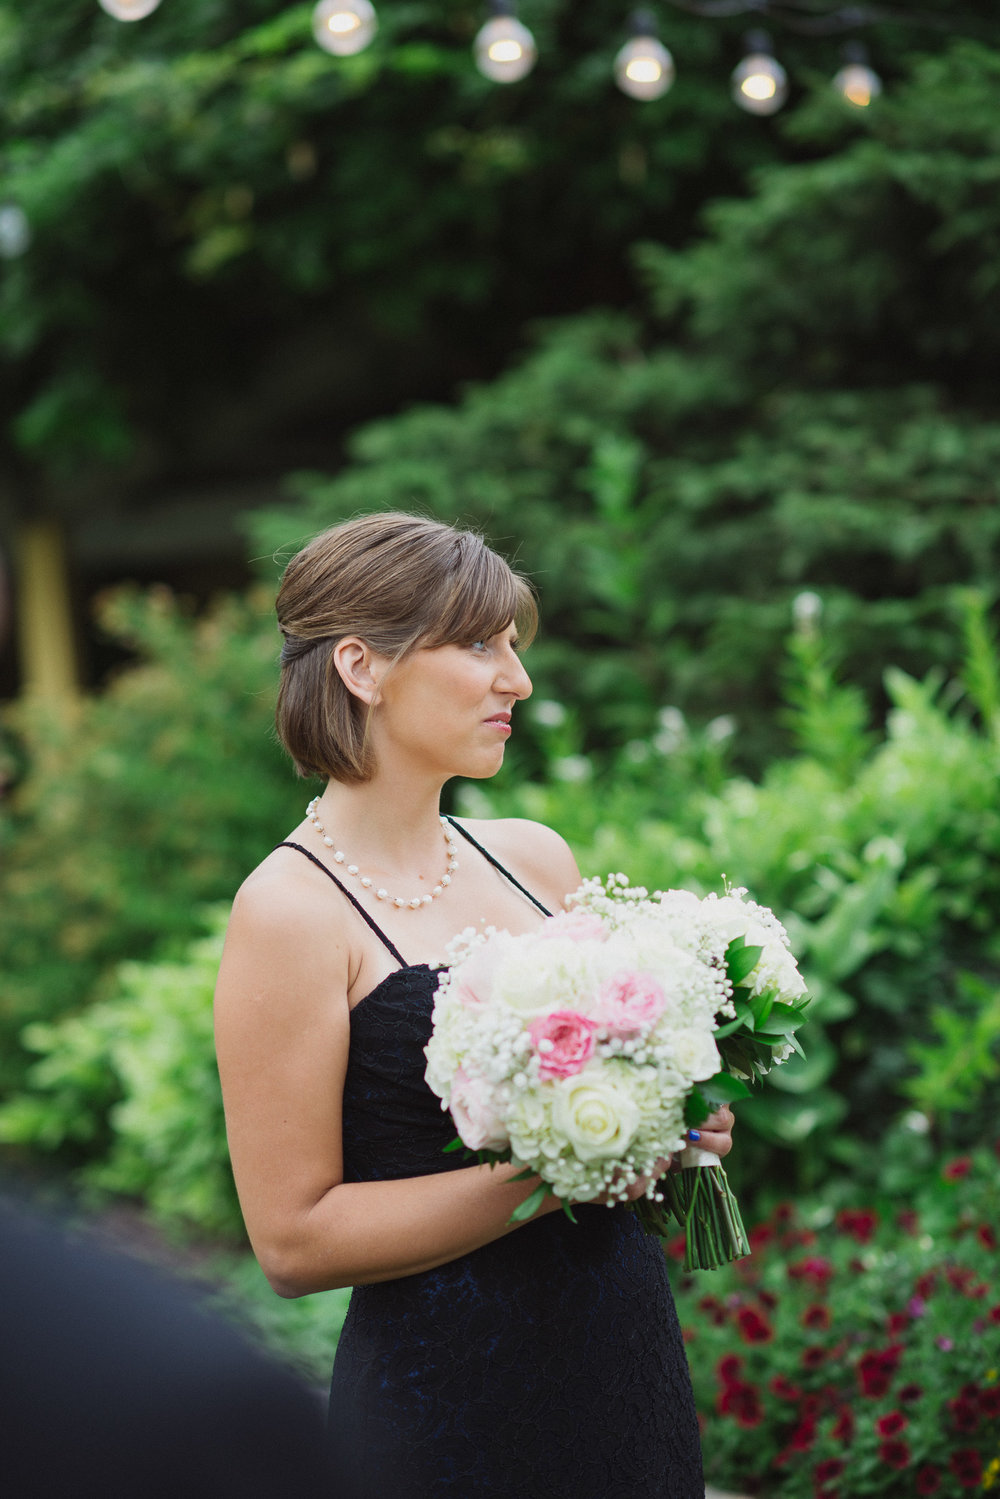 NH Wedding Photographer: matron of honor